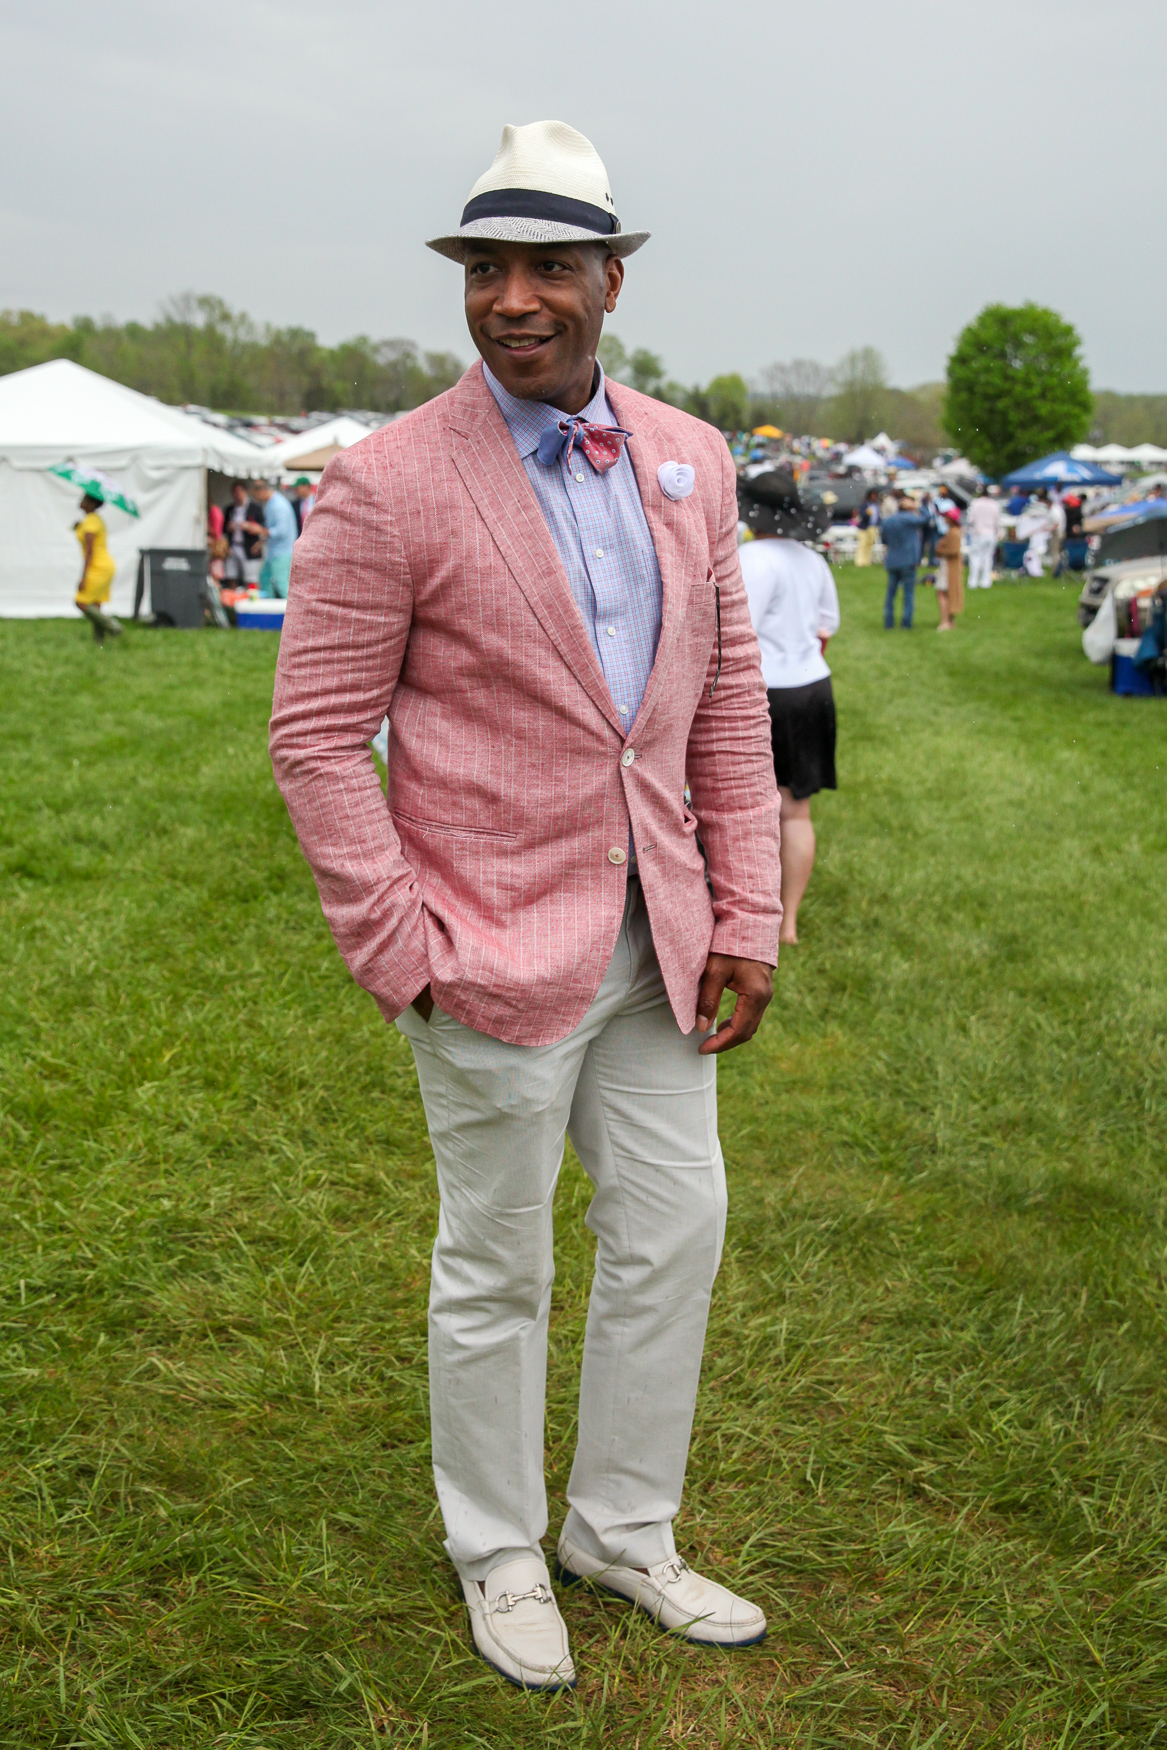 This outfit is preppy but still super cool.{ }(Amanda Andrade-Rhoades/DC Refined)